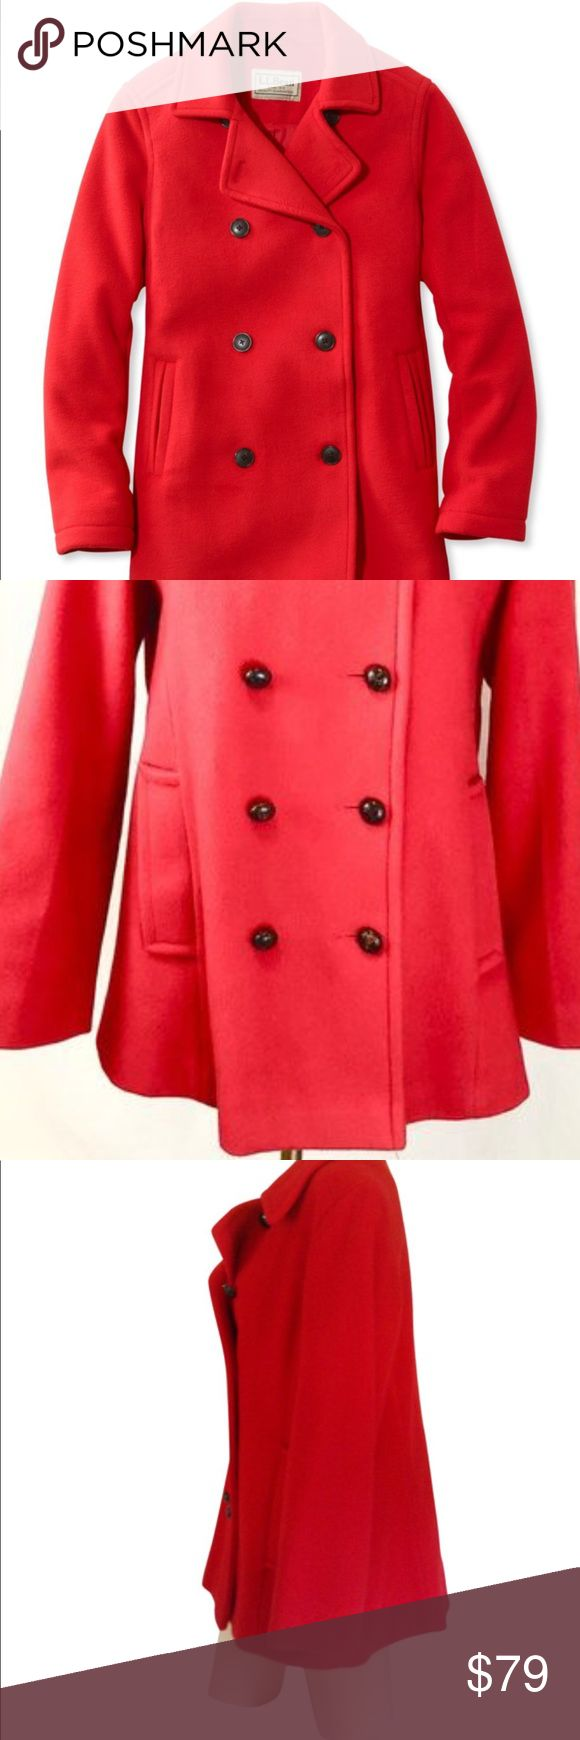 LLBean Wool Red Pea Coat 🧥new condition New . Condition. Perfect . No flaws . Size 18 which is a small .   I believe . In LLBEAN sizes . 100% wool . Very warm peacoat . Satin lining for softness .  Was a gift from my mother from the catalog. Just not my style . Wrapped and shipped with care . LL Bean Jackets & Coats Pea Coats